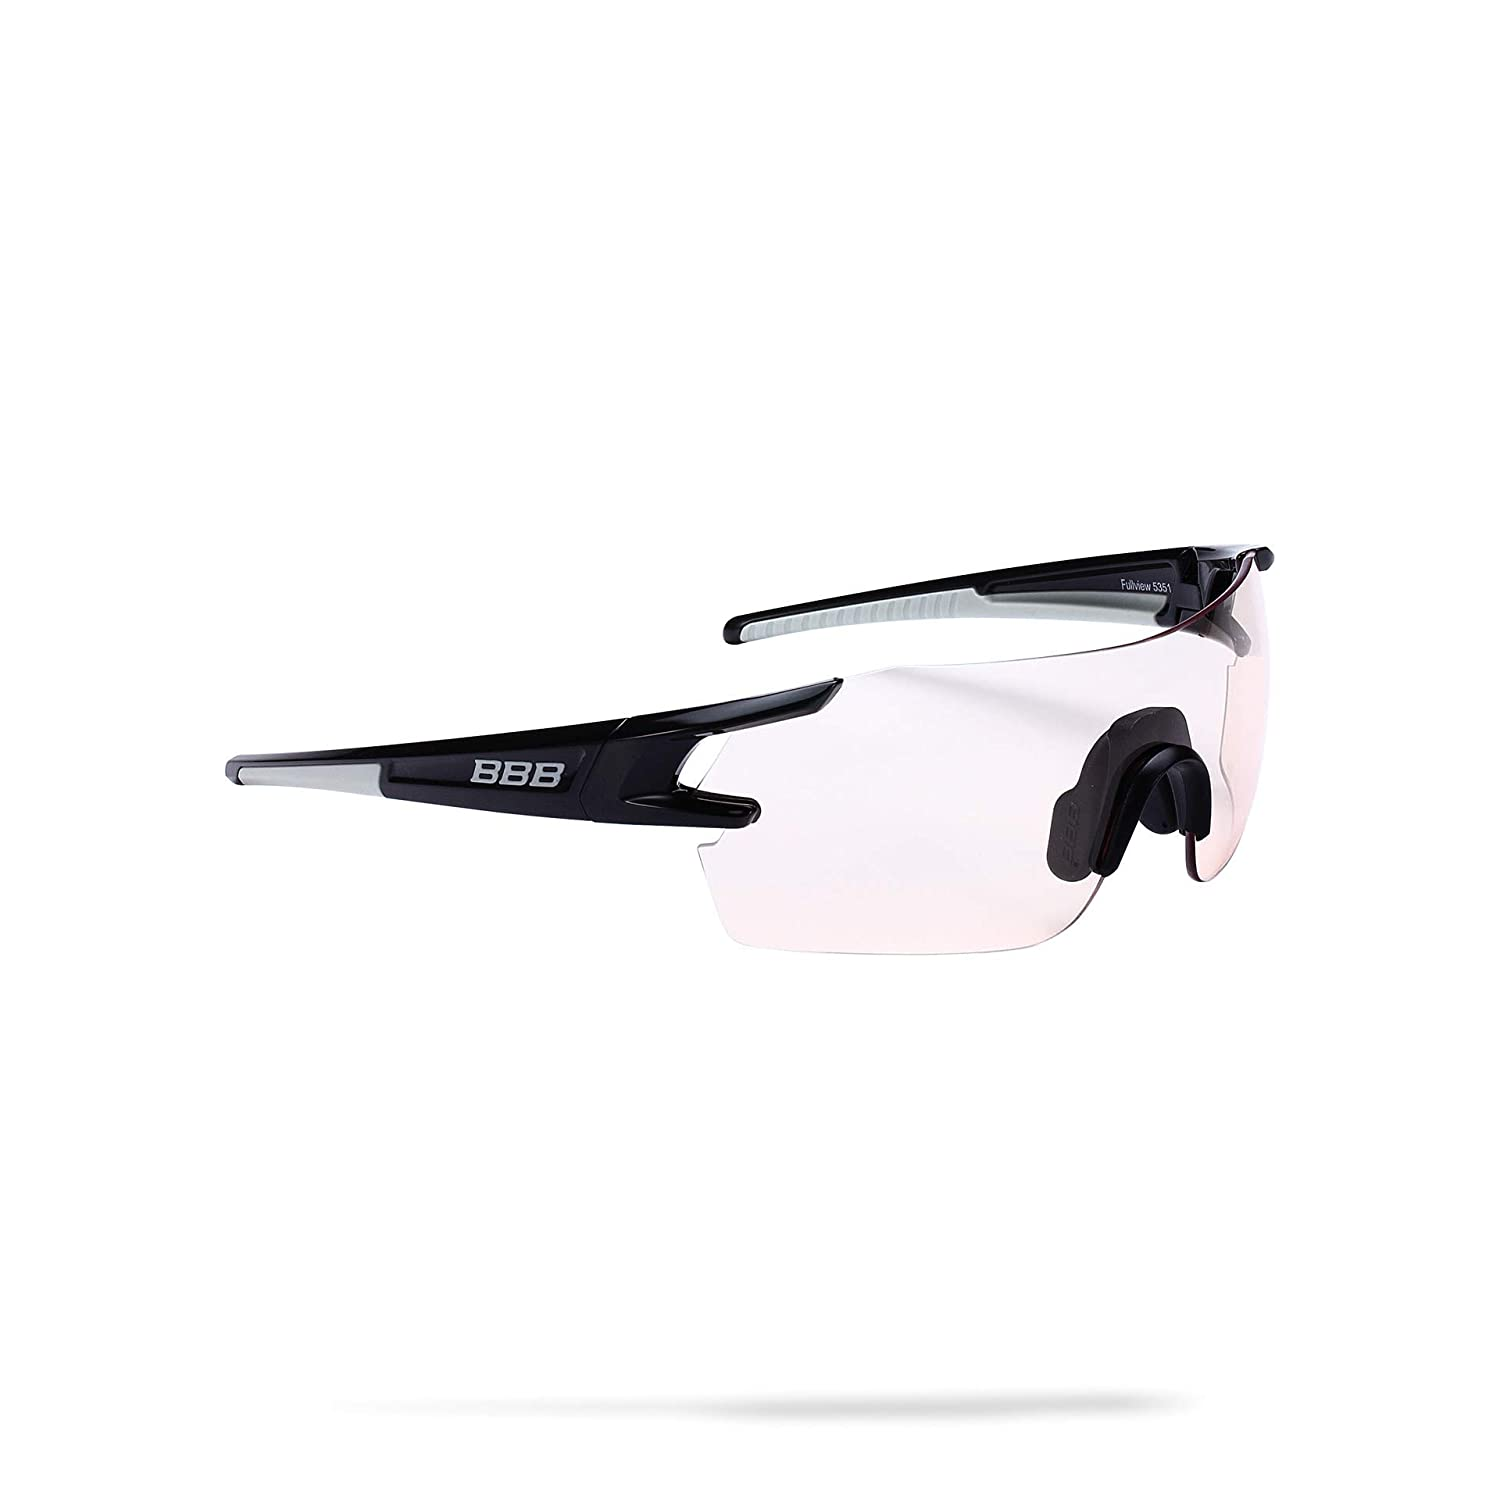 BBB Cycling BSG de 53ph Fullview PH Deportes Gafas con ...